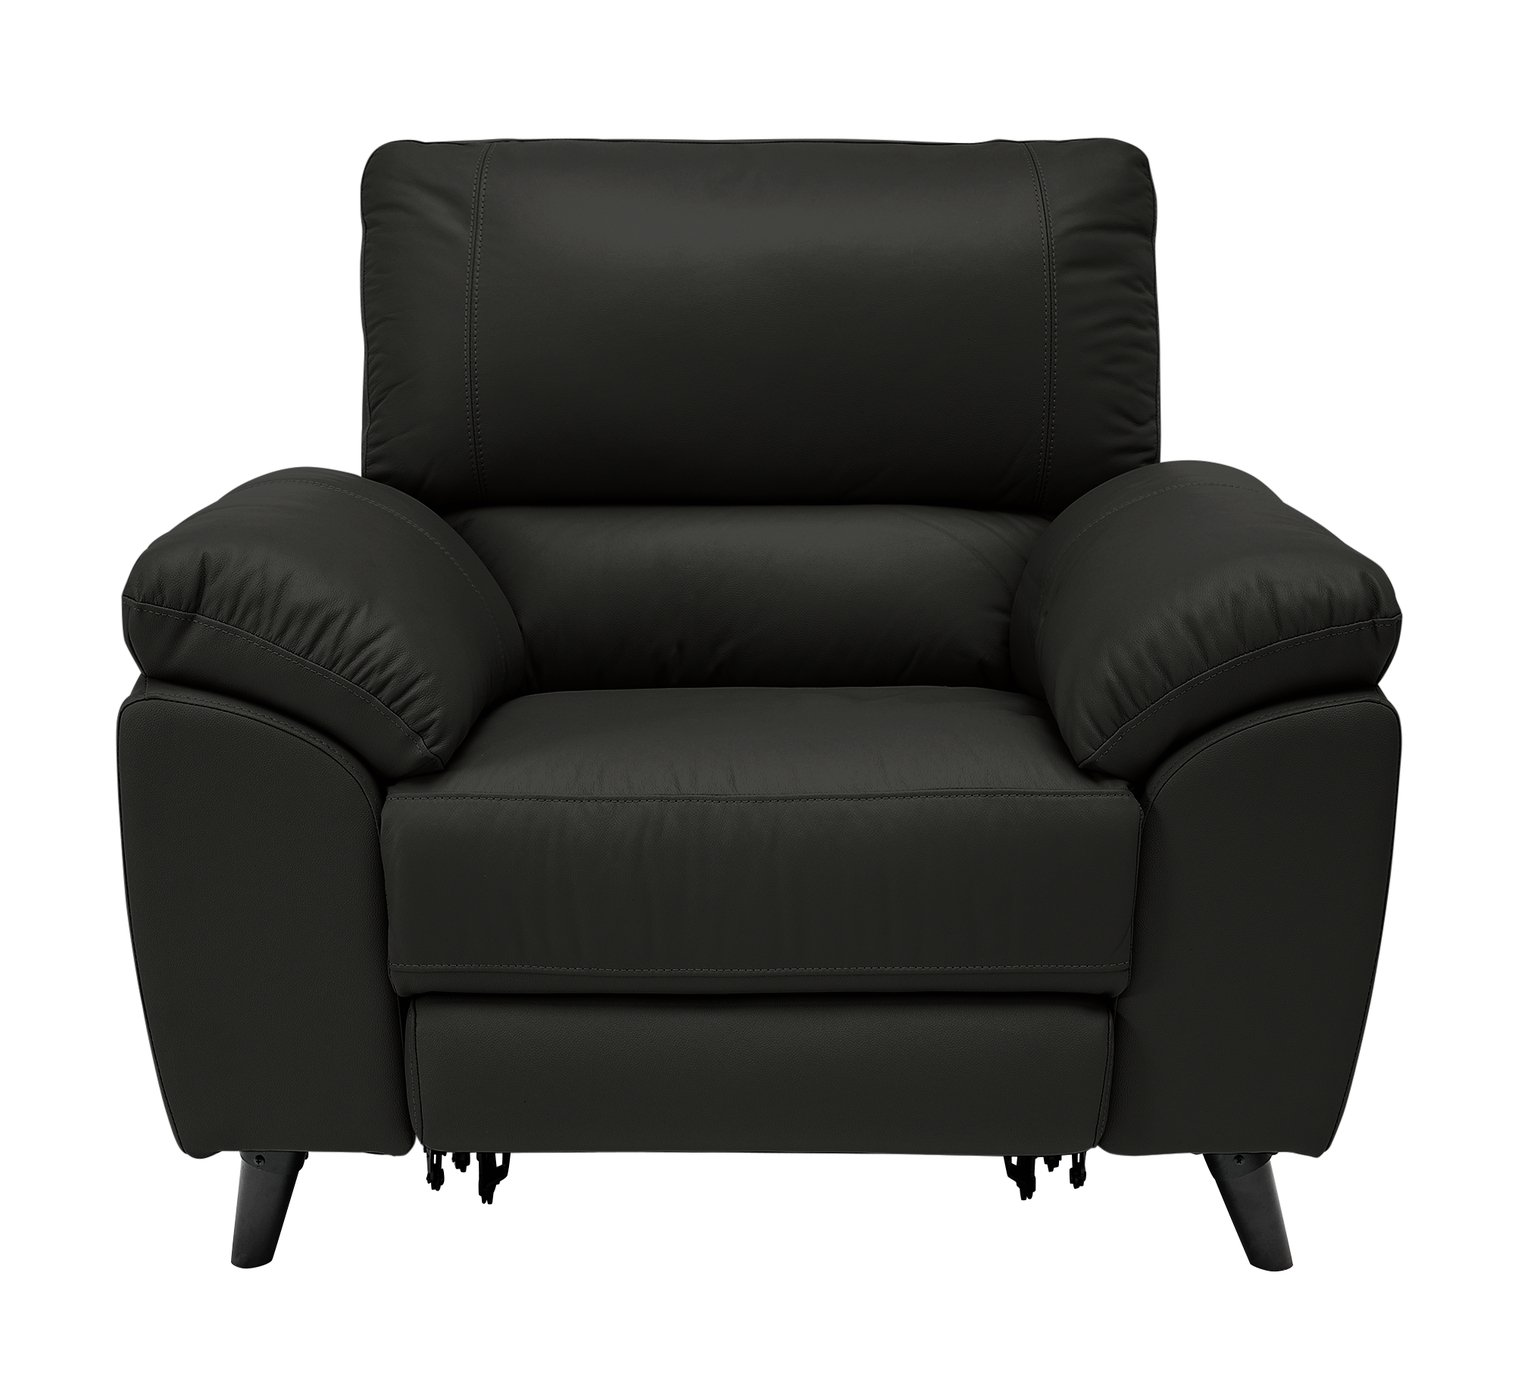 Argos Home Elliot Leather Mix Power Recliner Chair - Black